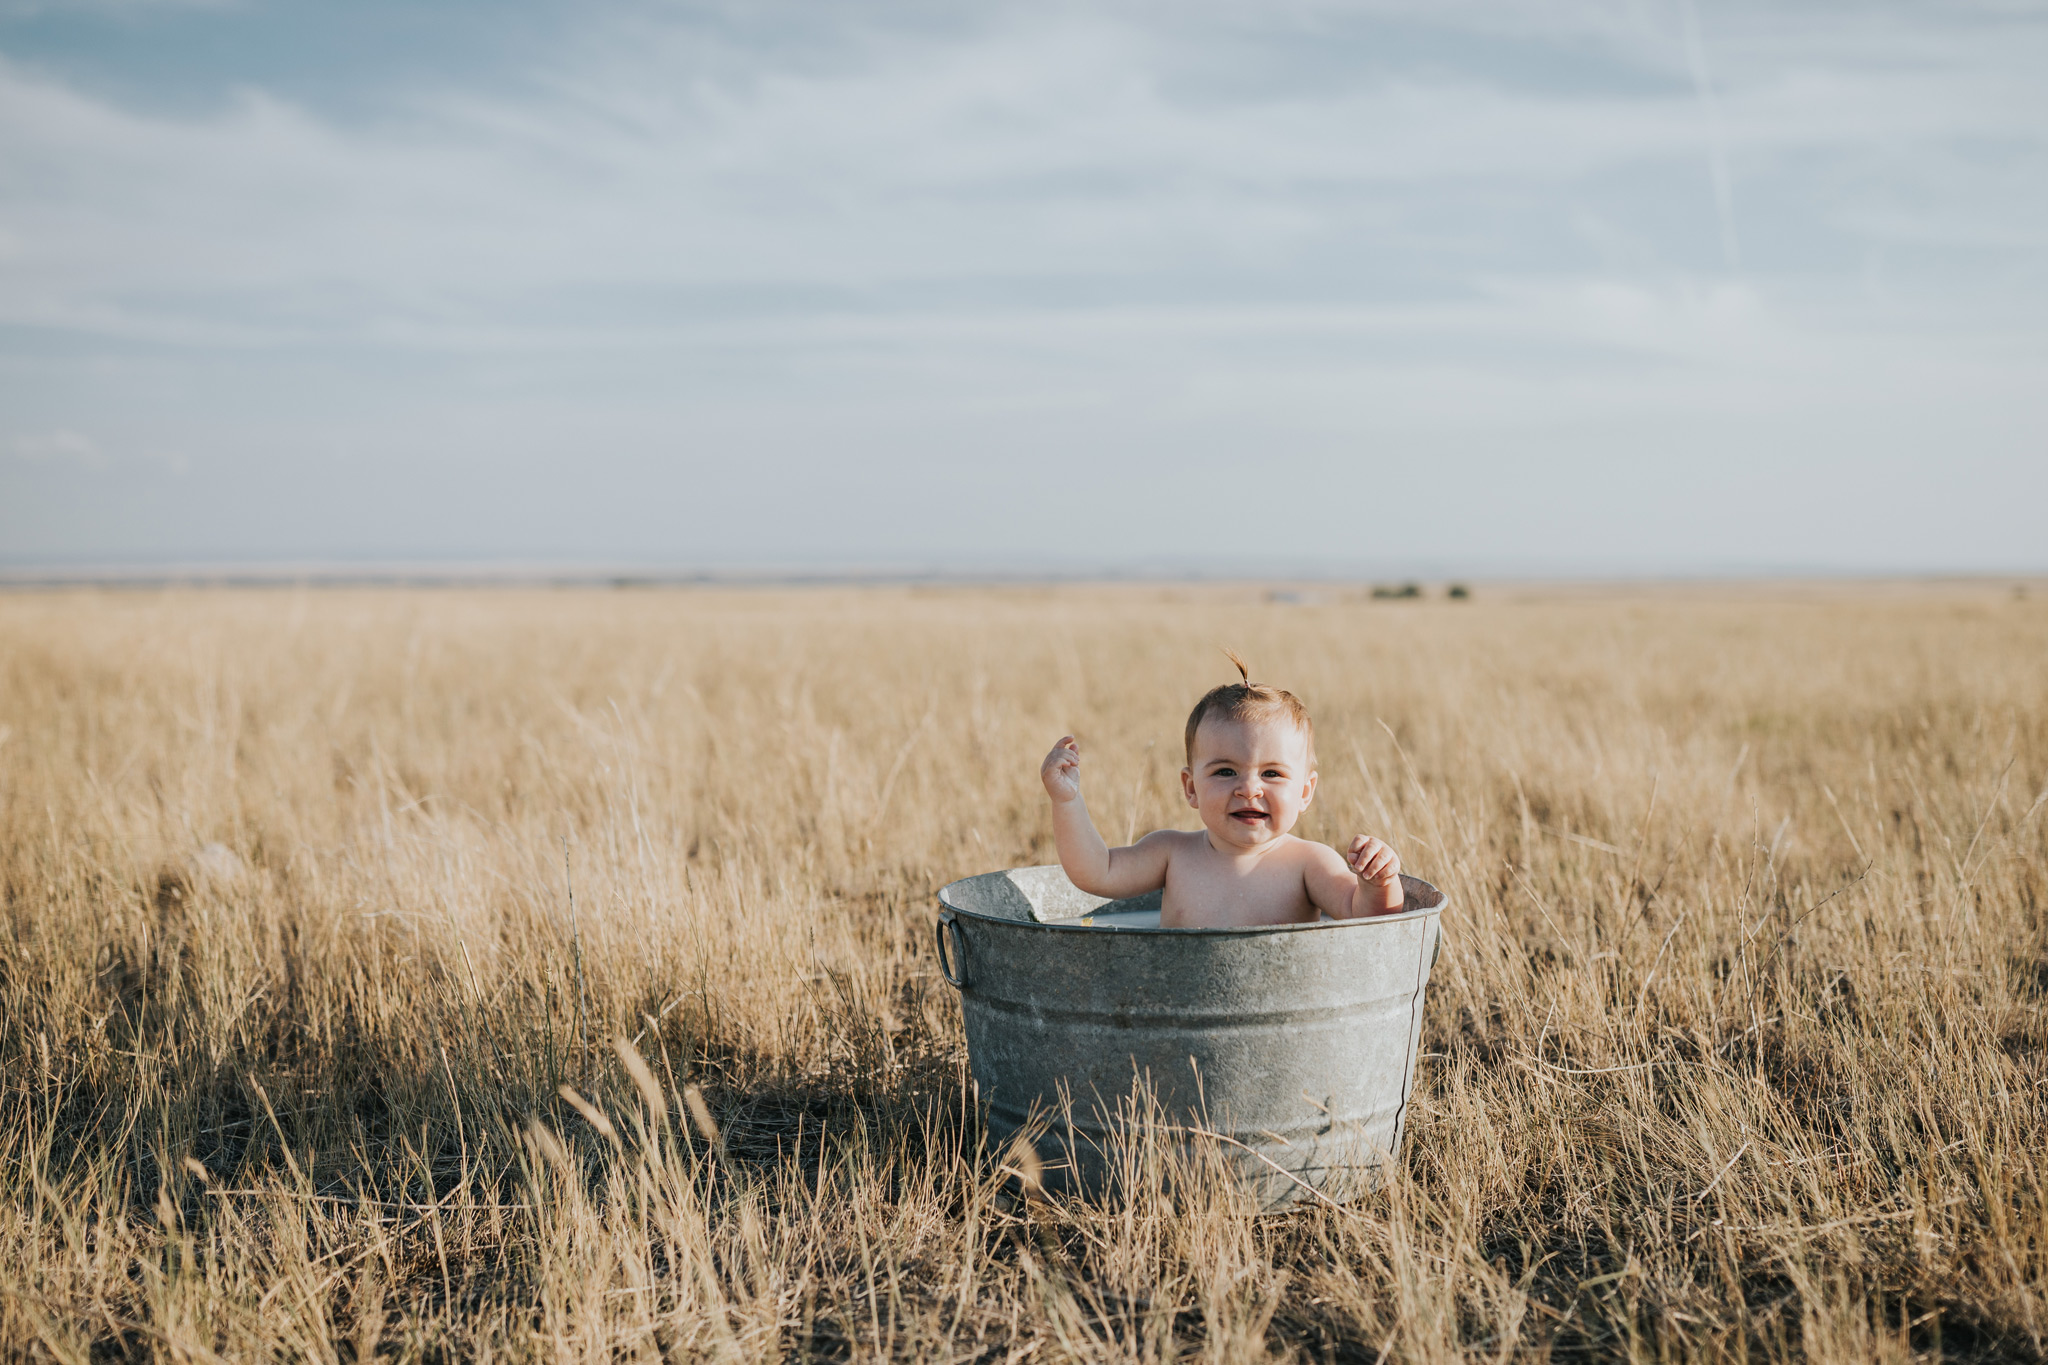 baby sitting in round metal tub milk bath smiling irvine alberta farm